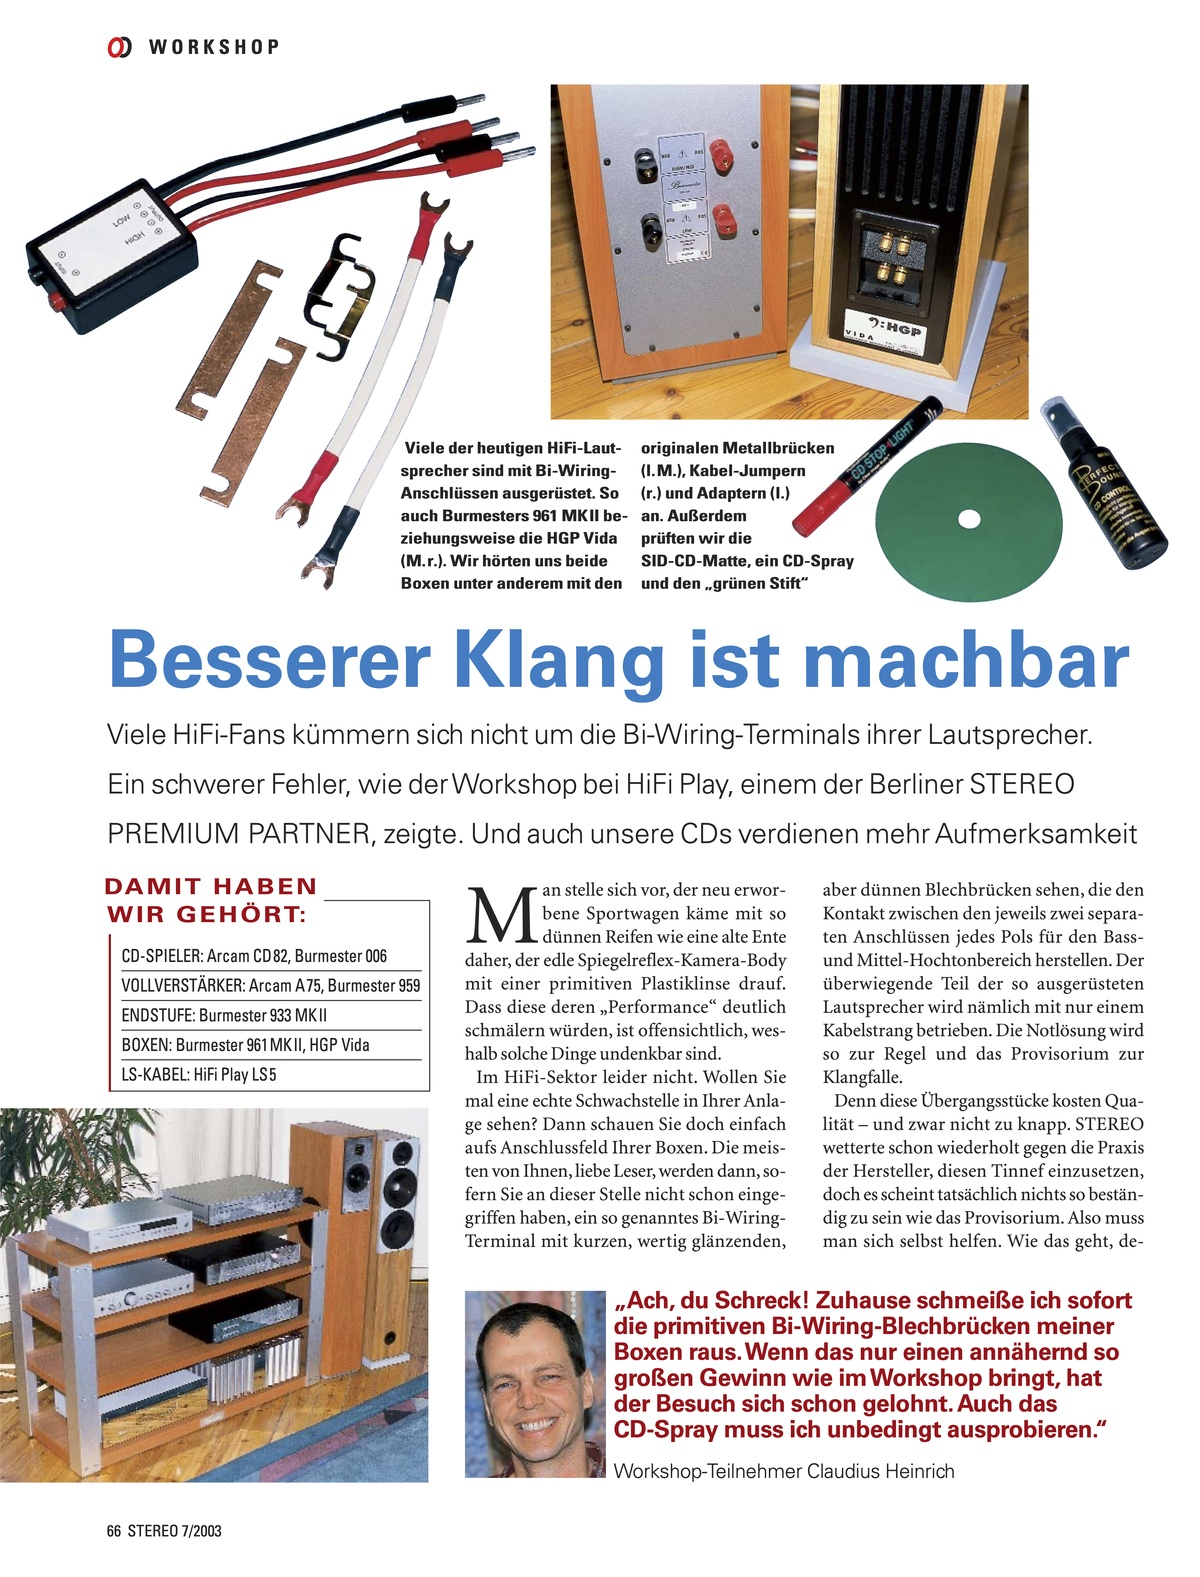 STEREO 07/2003 - Workshop beim HIFIplay - Seite 1 (© STEREO)